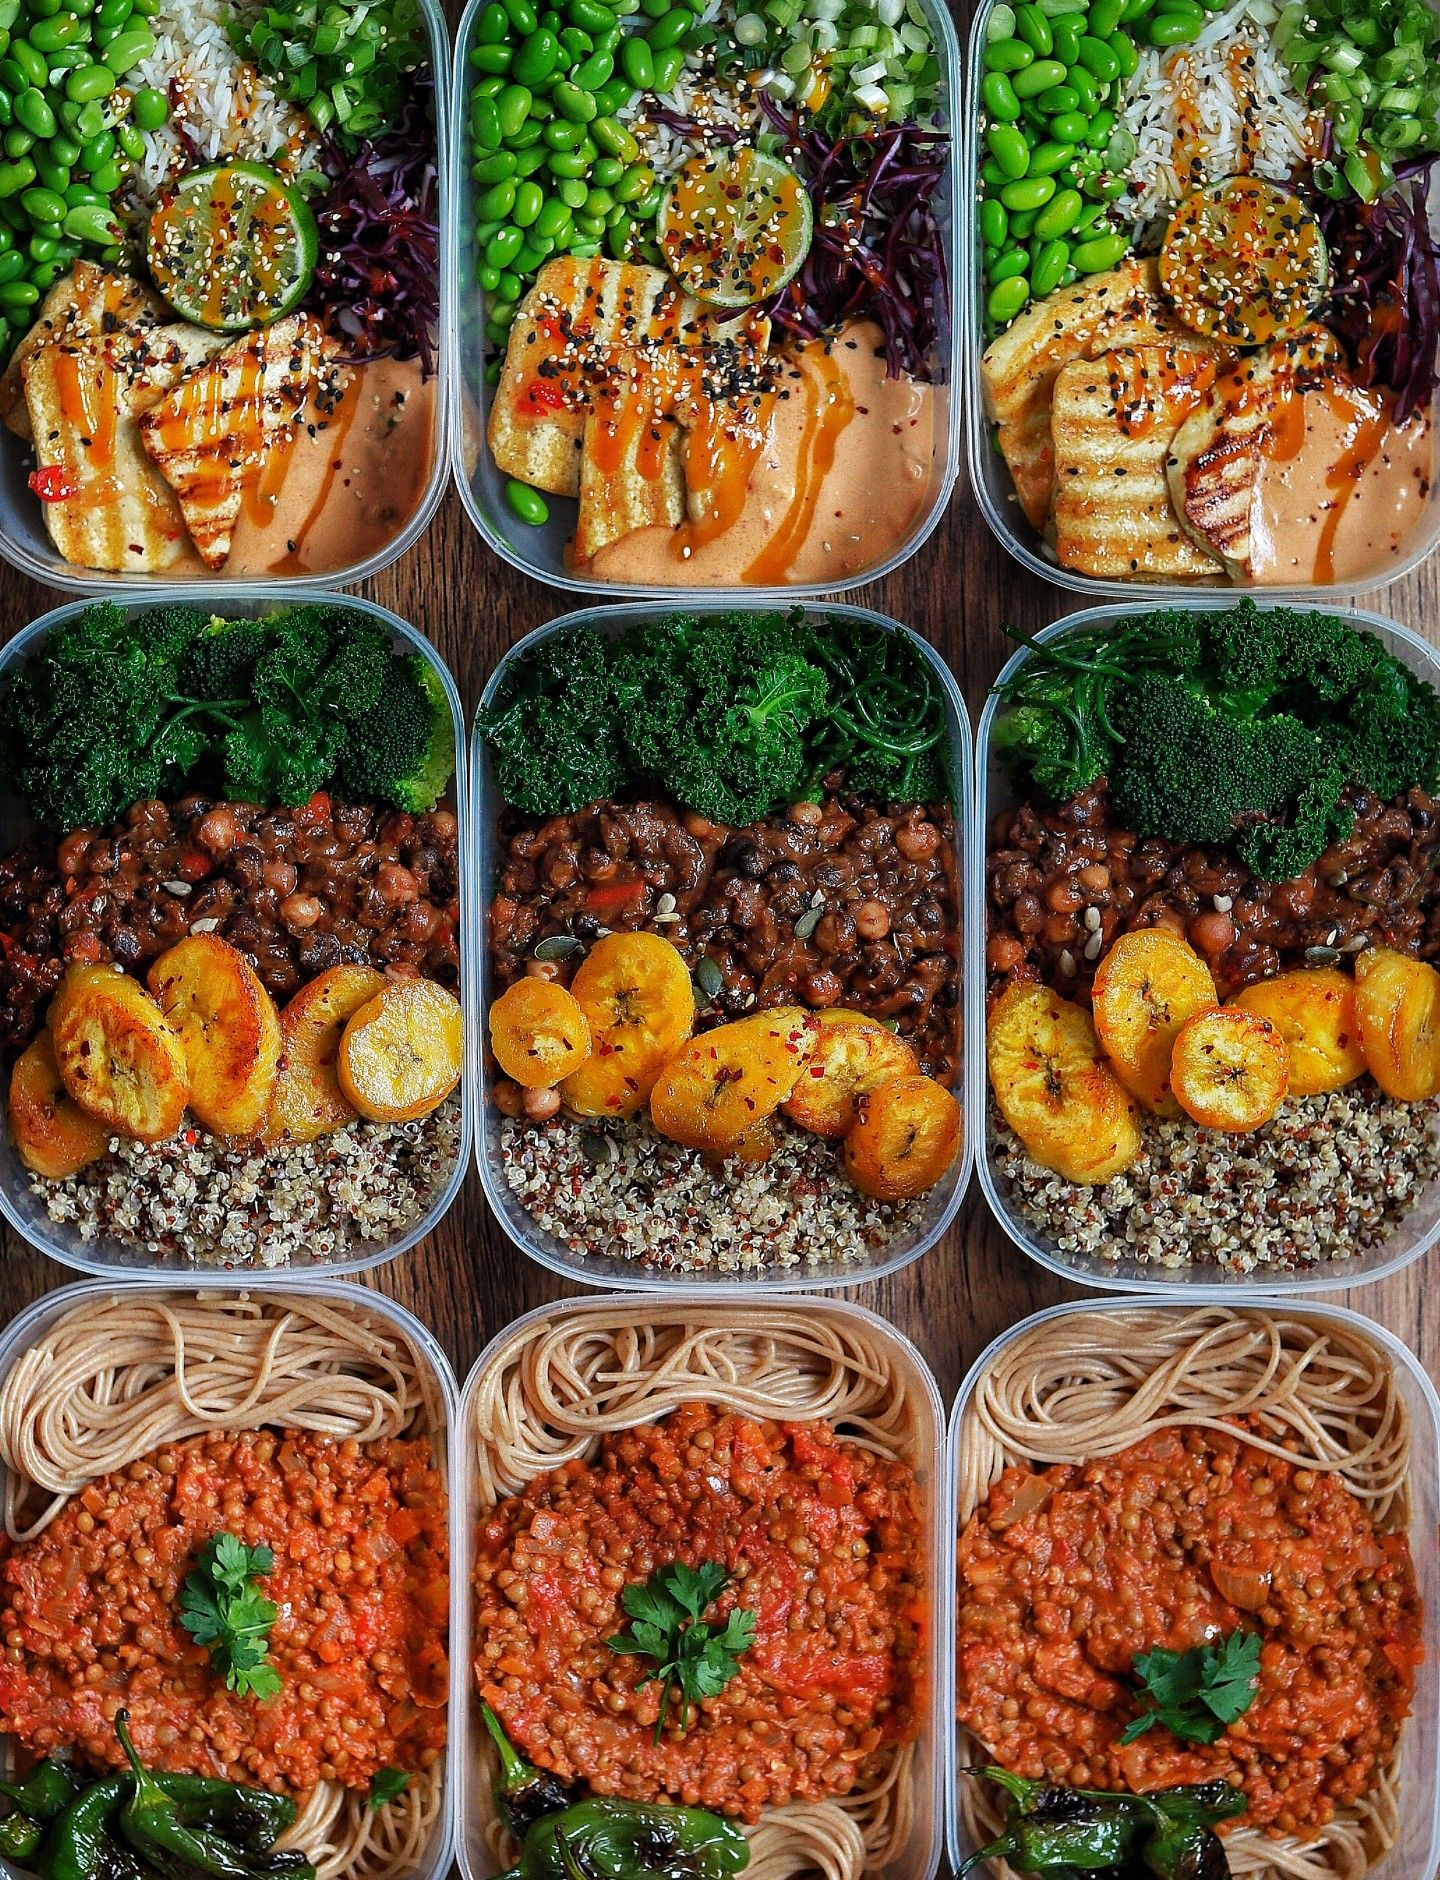 Protein Packed Meal Prep In 2019 Vegan Meal Plans